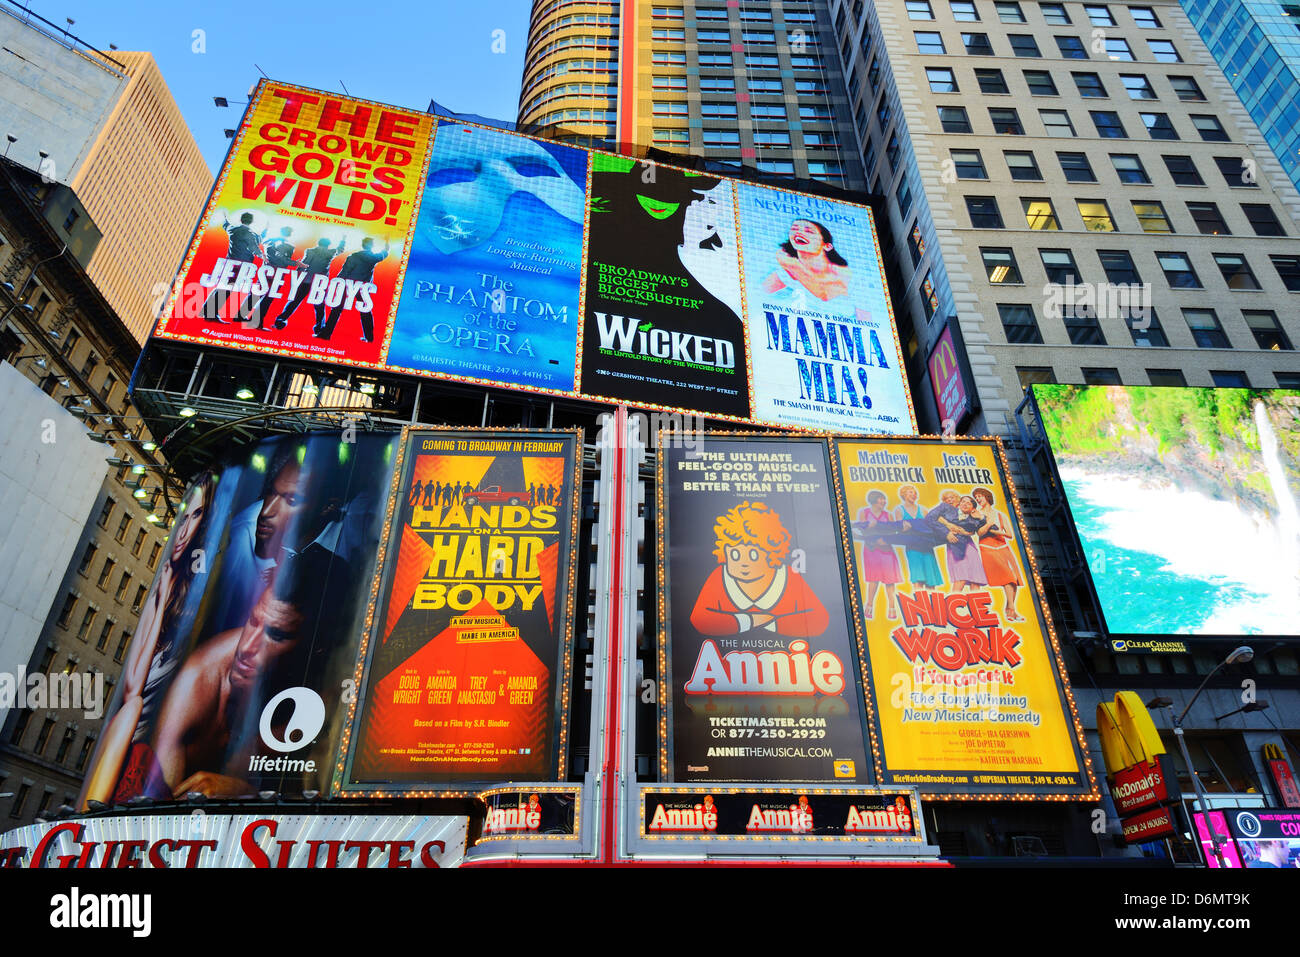 Broadway Play advertisements in Times Square, New York City. - Stock Image